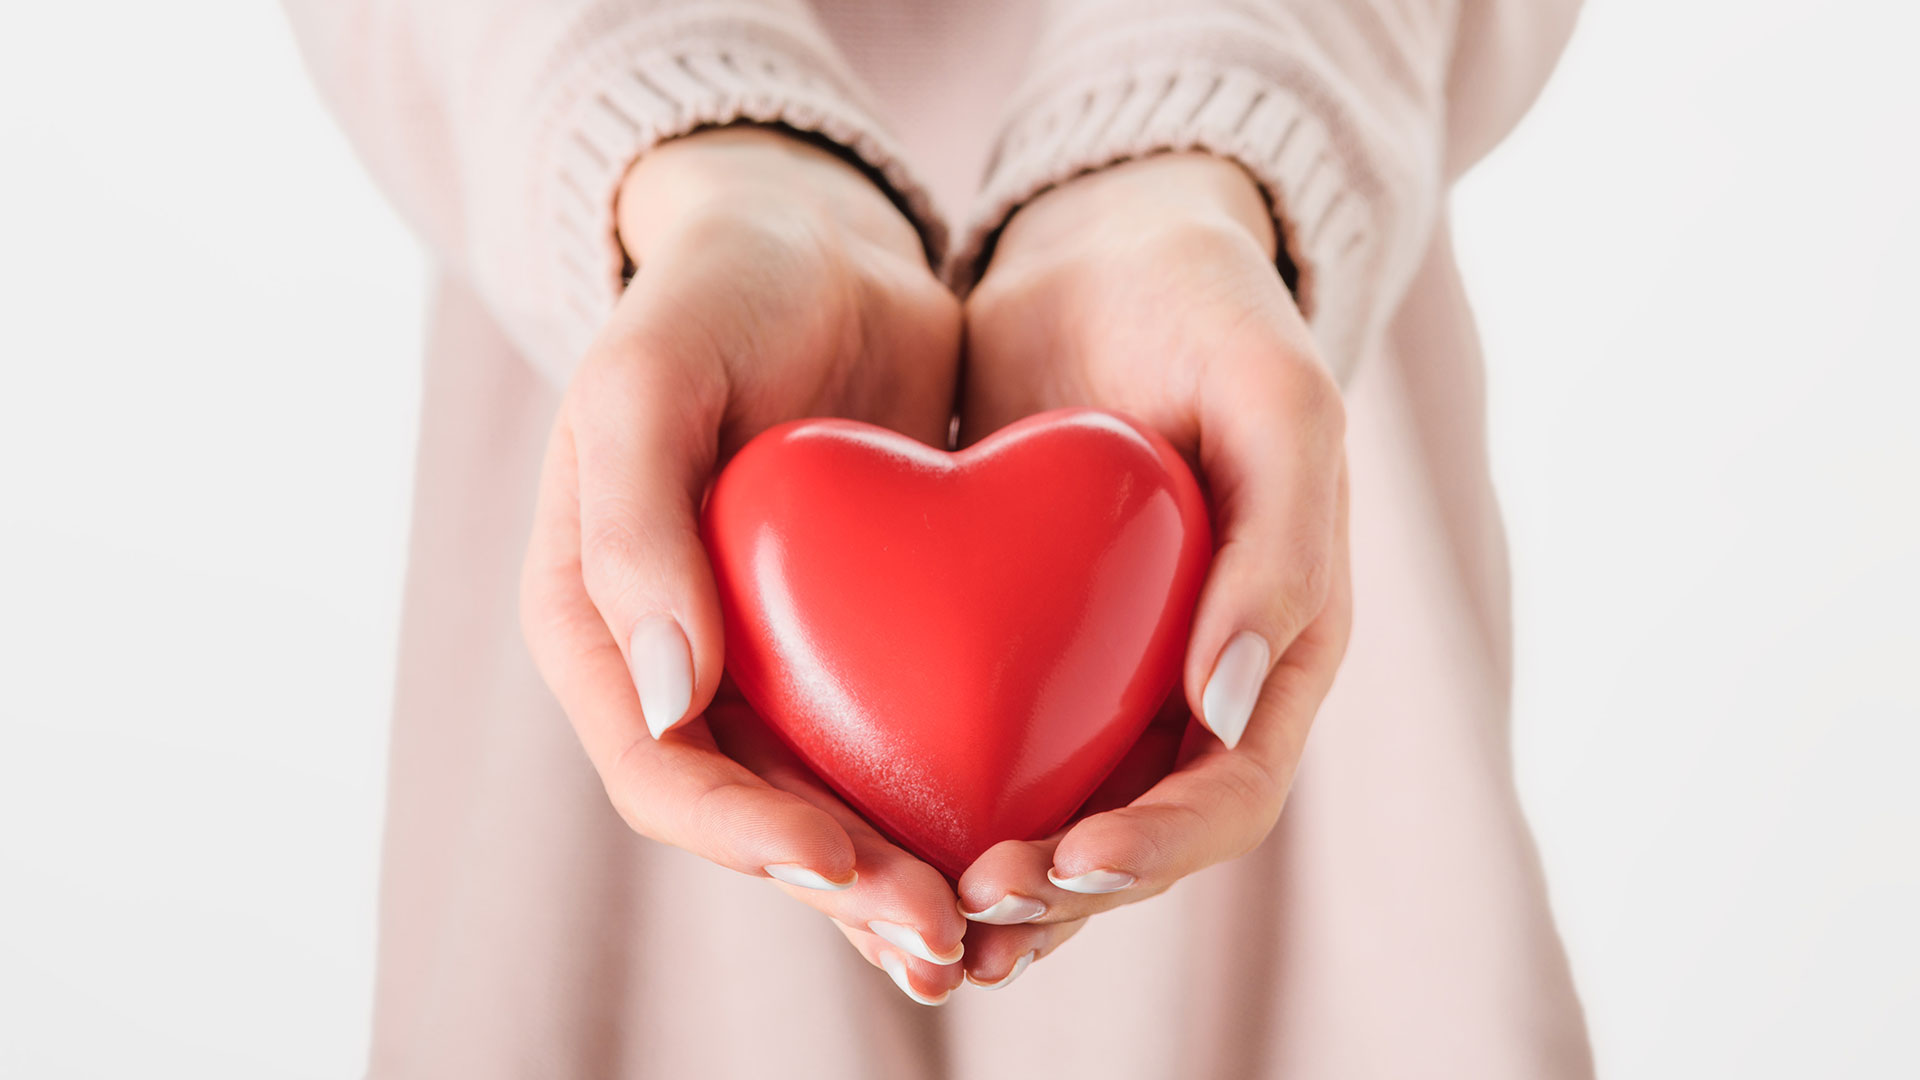 Women Should Take Care of Their Hearts